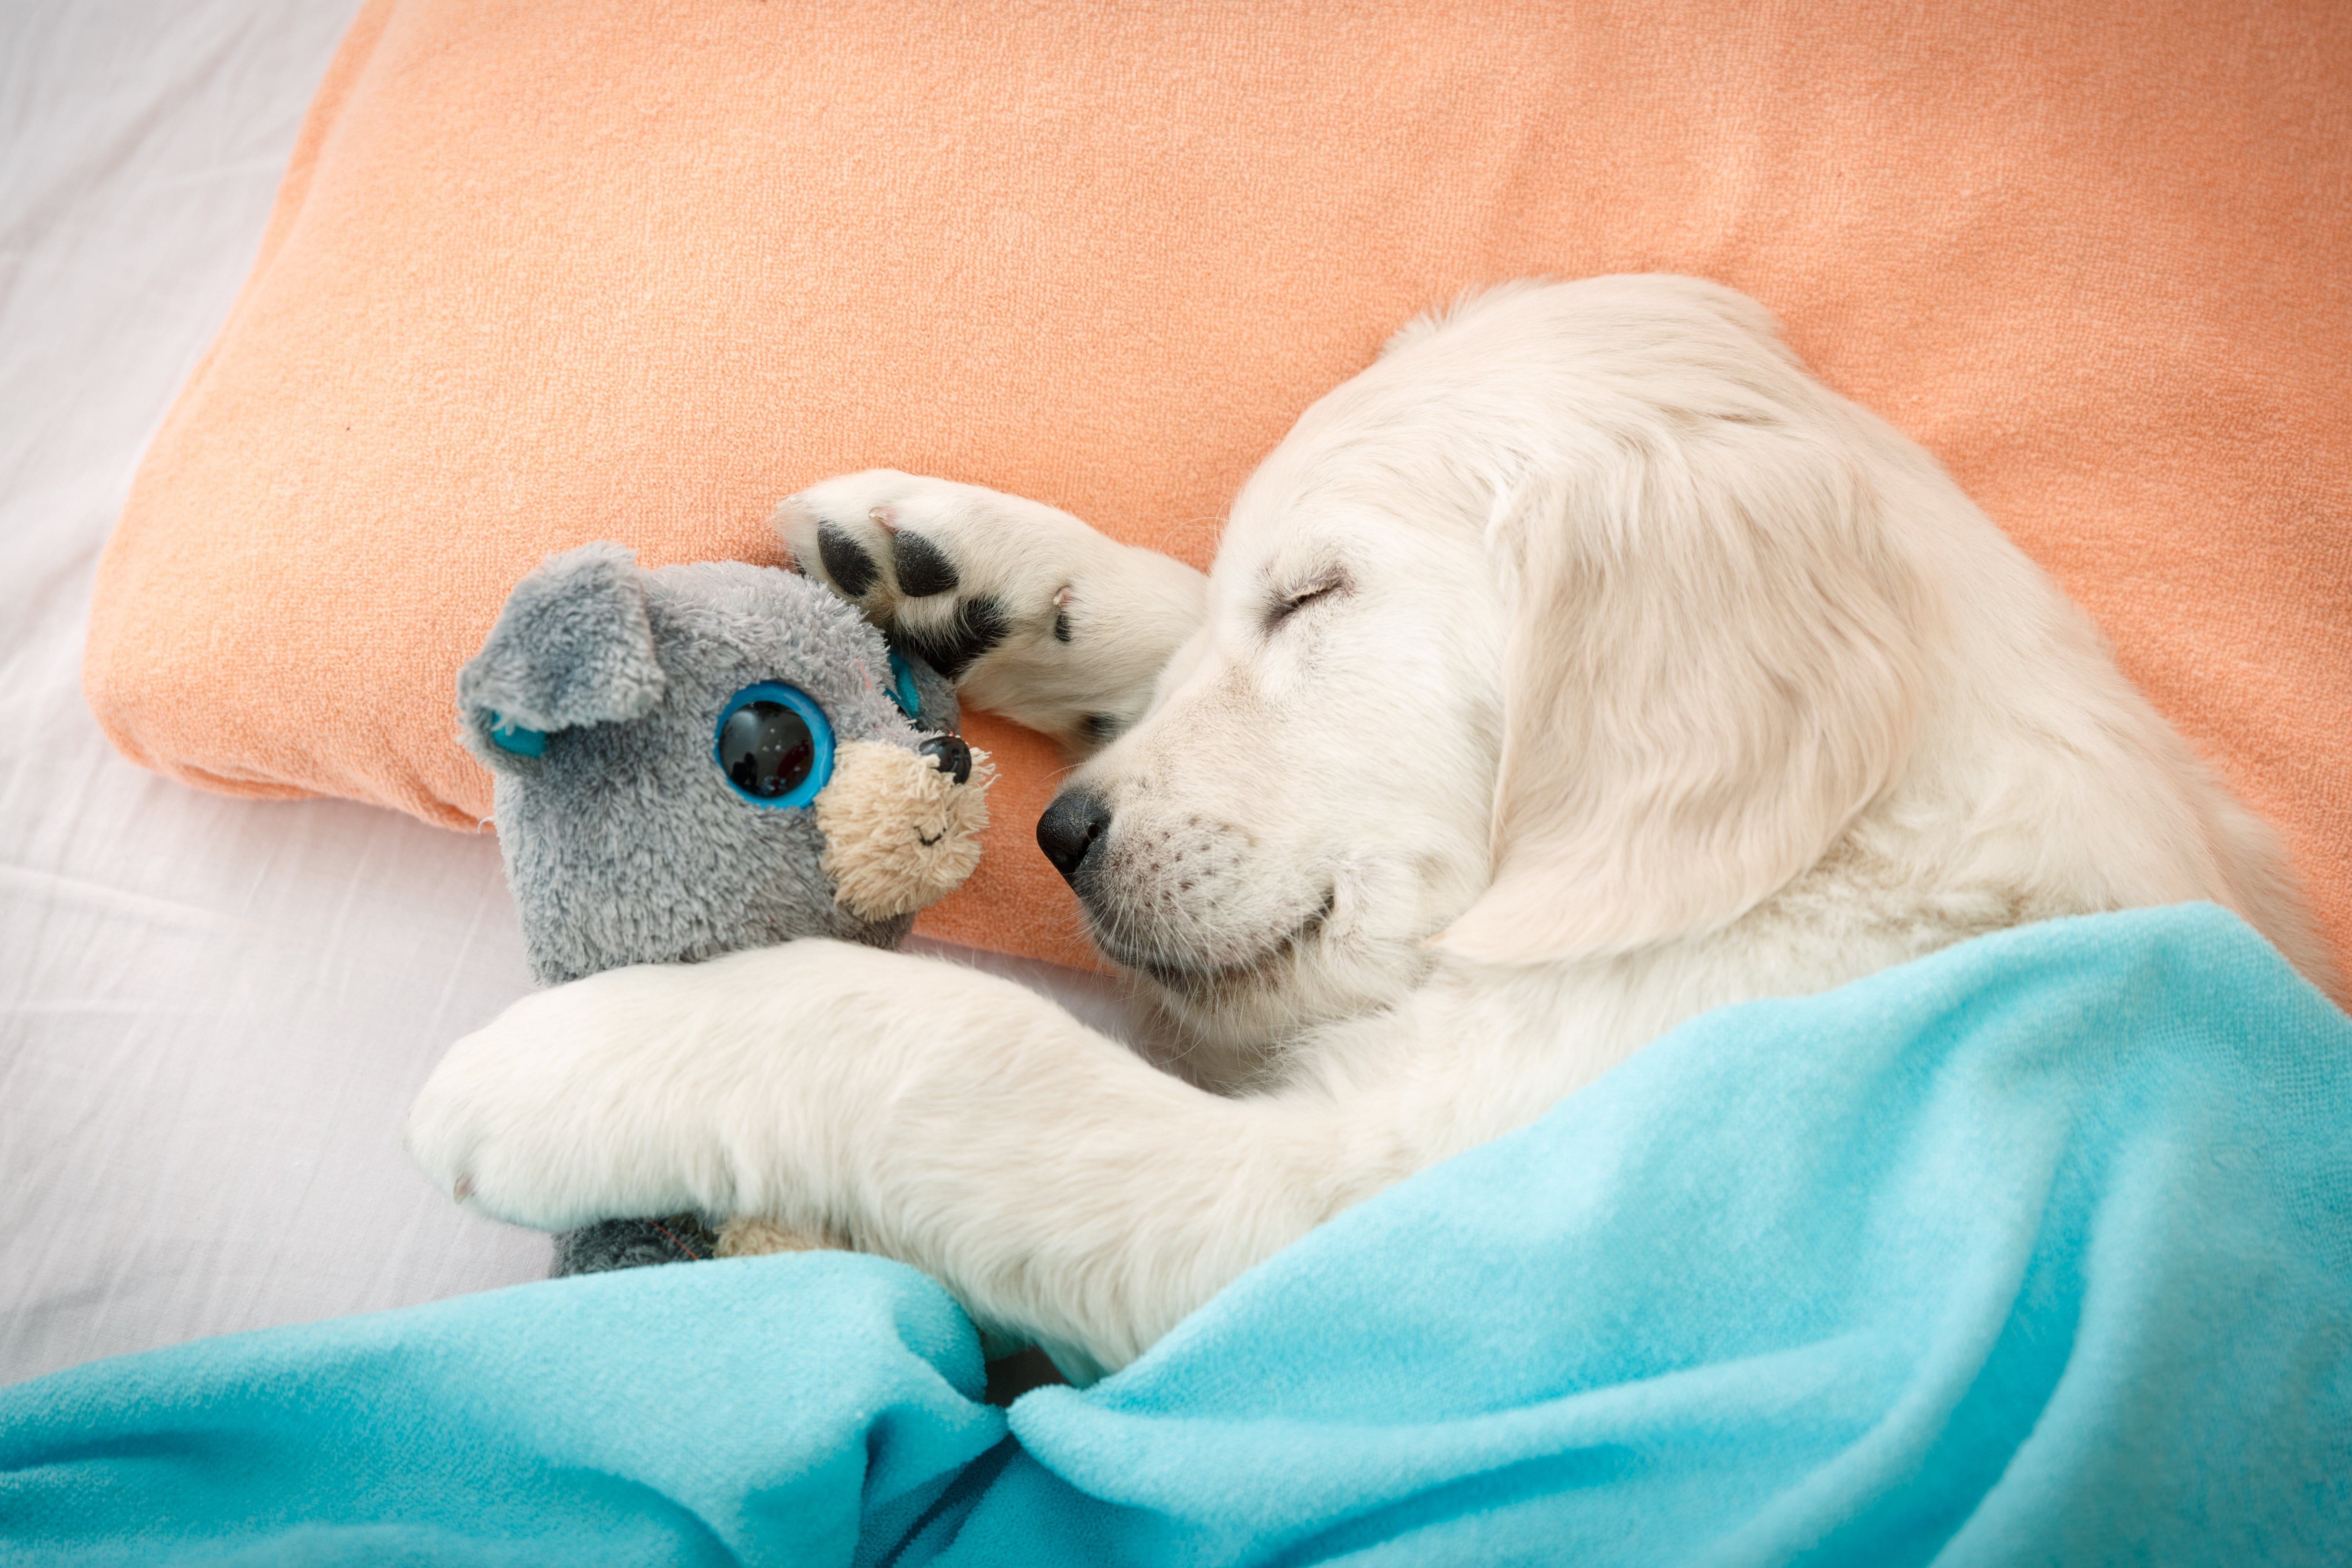 labrador retriever puppy sleeping with toy on the bed-homemade dog toys-Scrap fabric dog toys-Best fabric for dog toys-Diy dog toys to sell-homemade dog toys for shelters